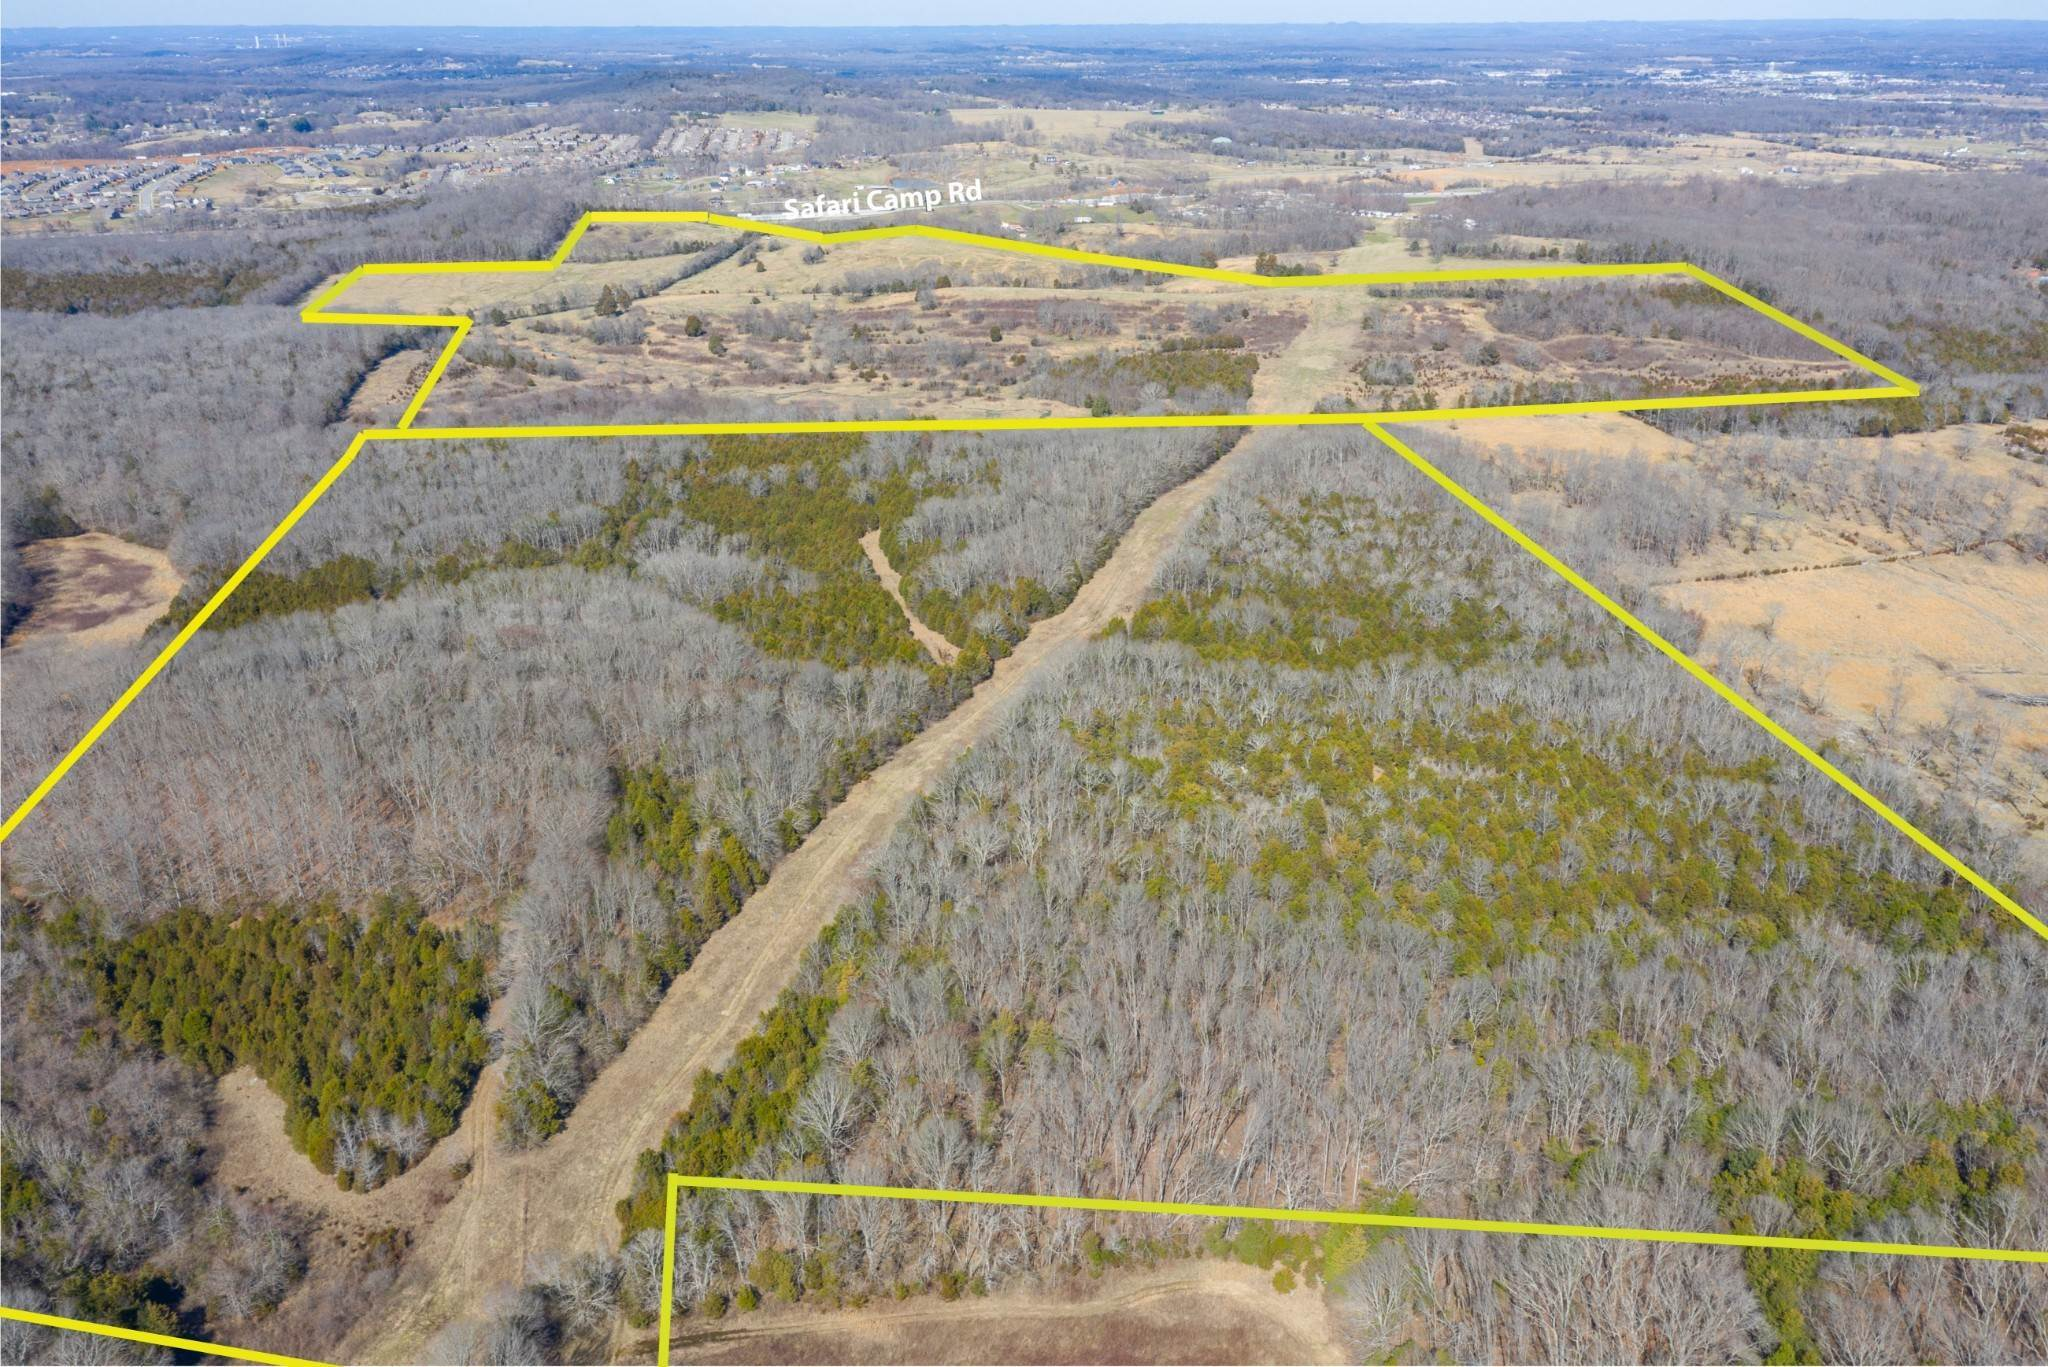 Land for Sale at Safari Camp Road Lebanon, Tennessee 37090 United States